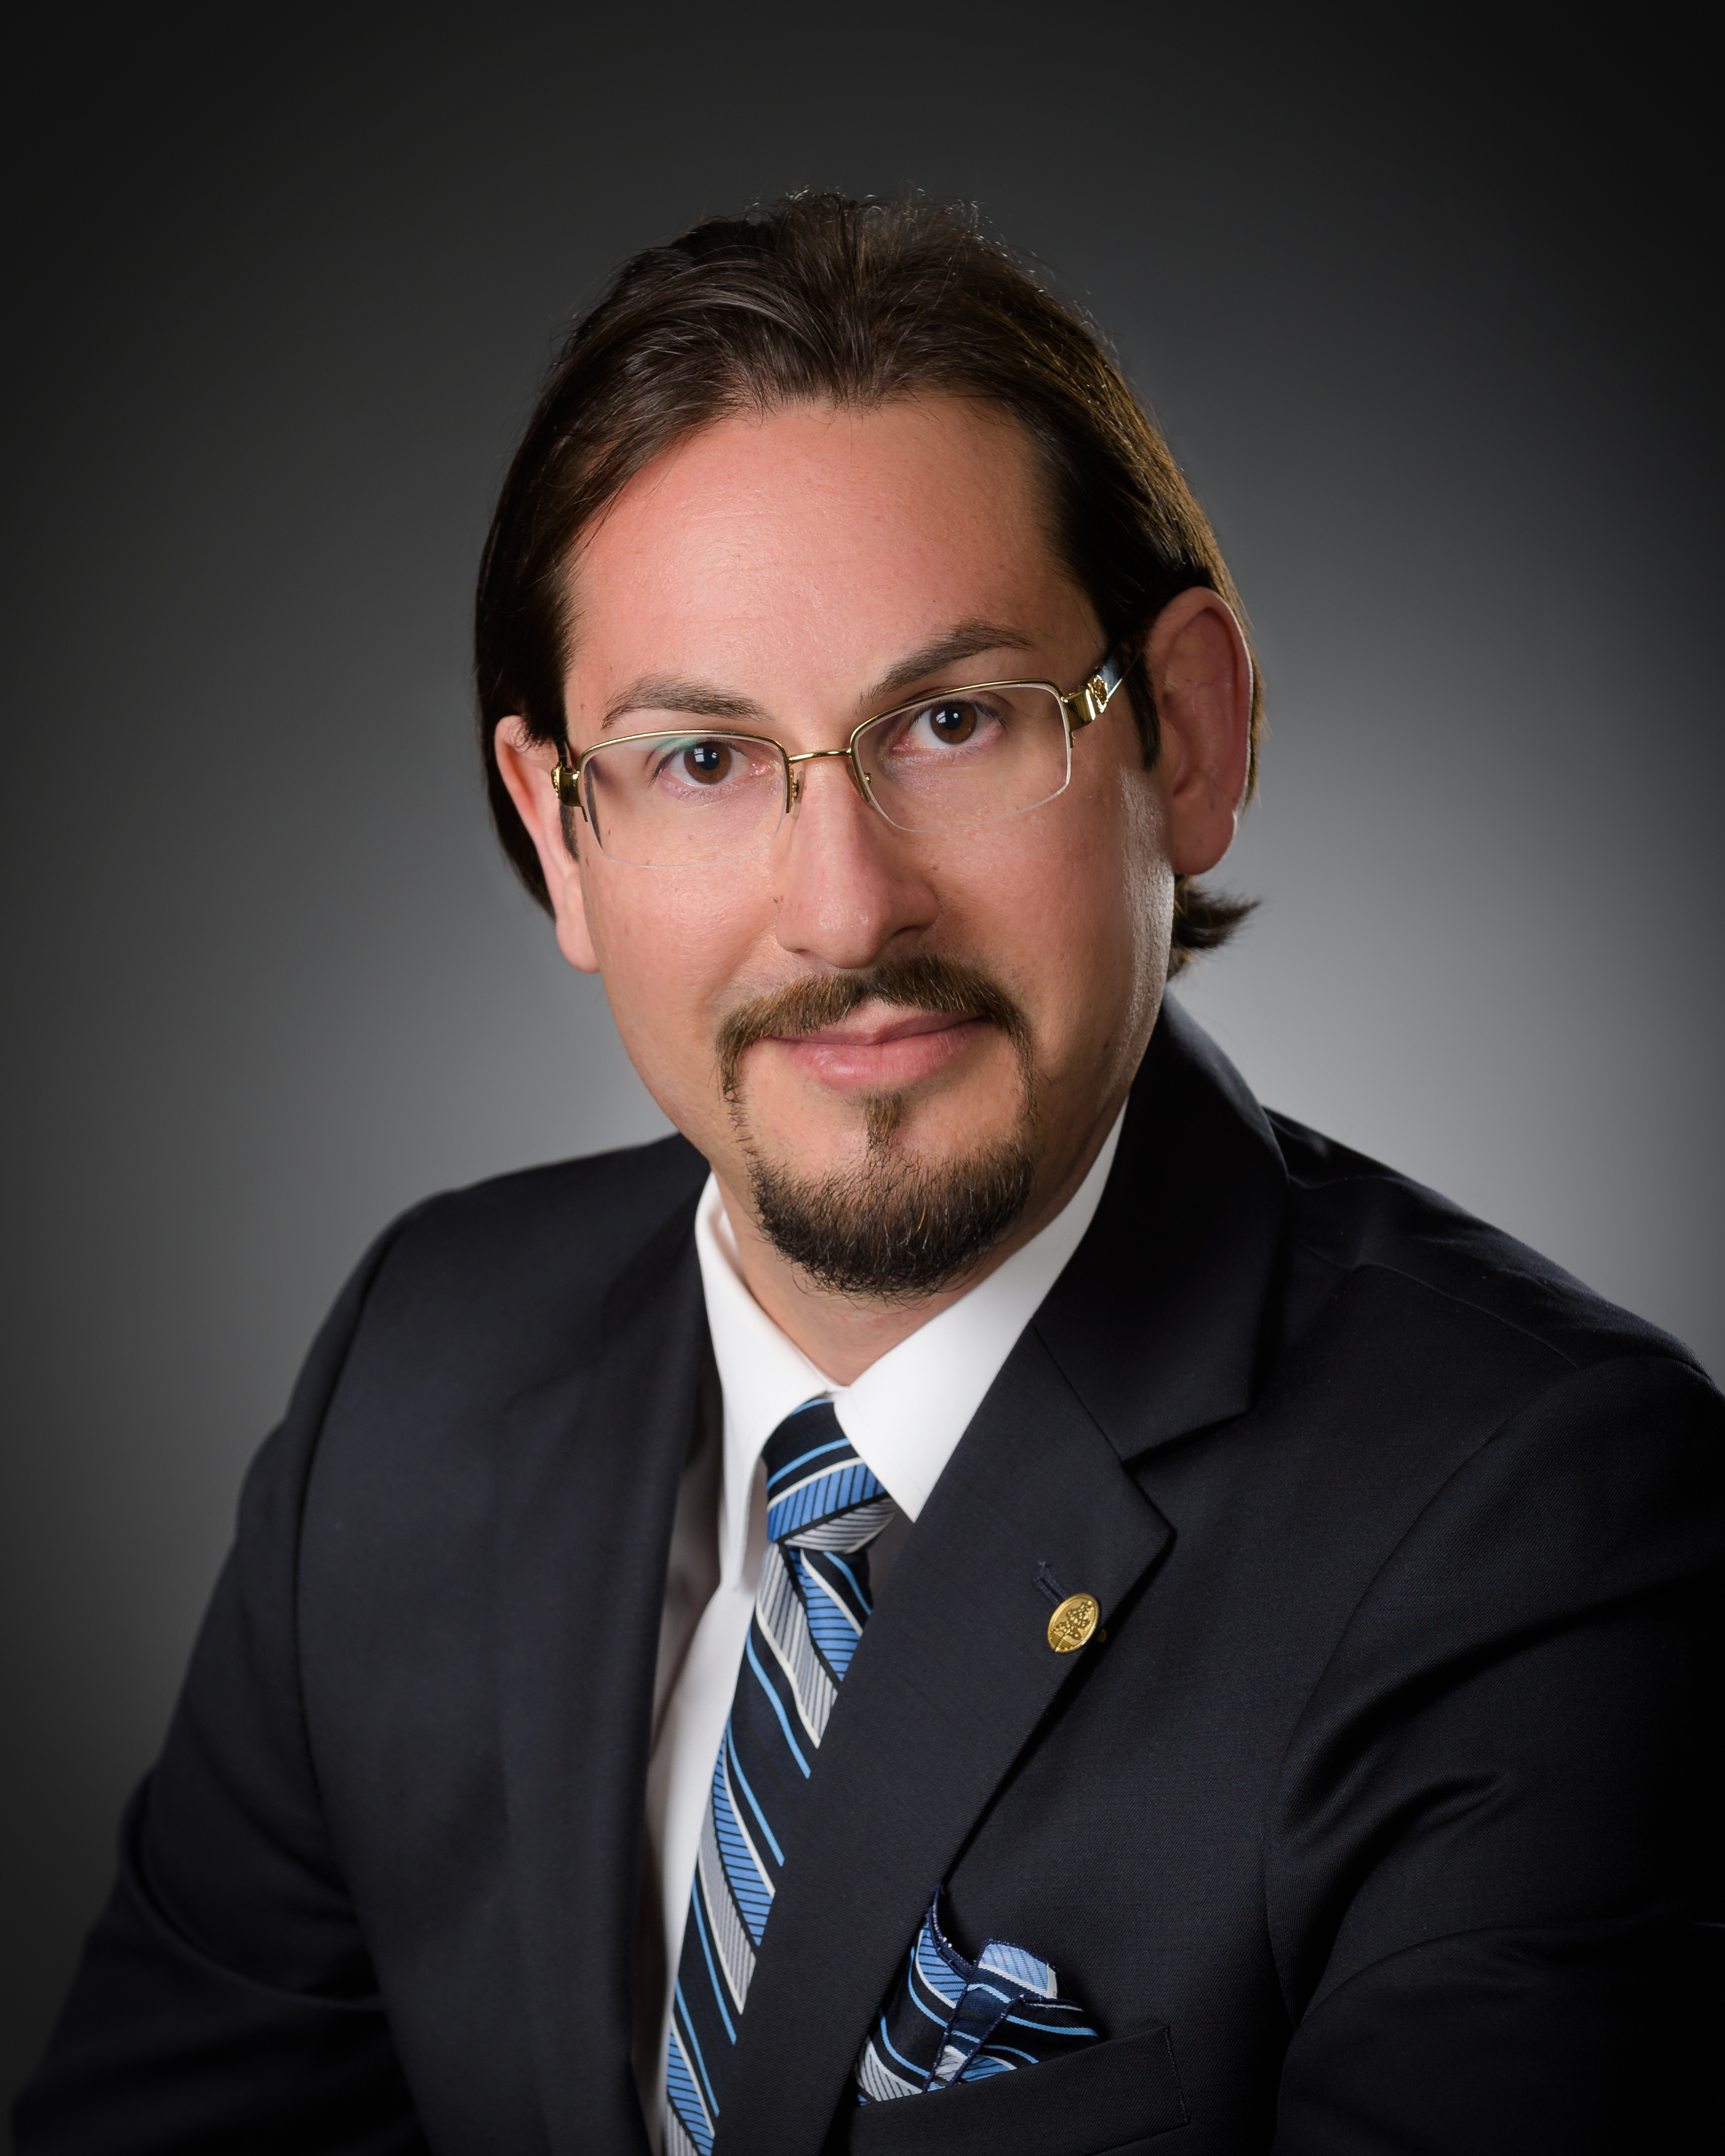 McDougall & Brown Funeral Home - Scarborough  Pre-planning Funeral Director Ryan Horvath